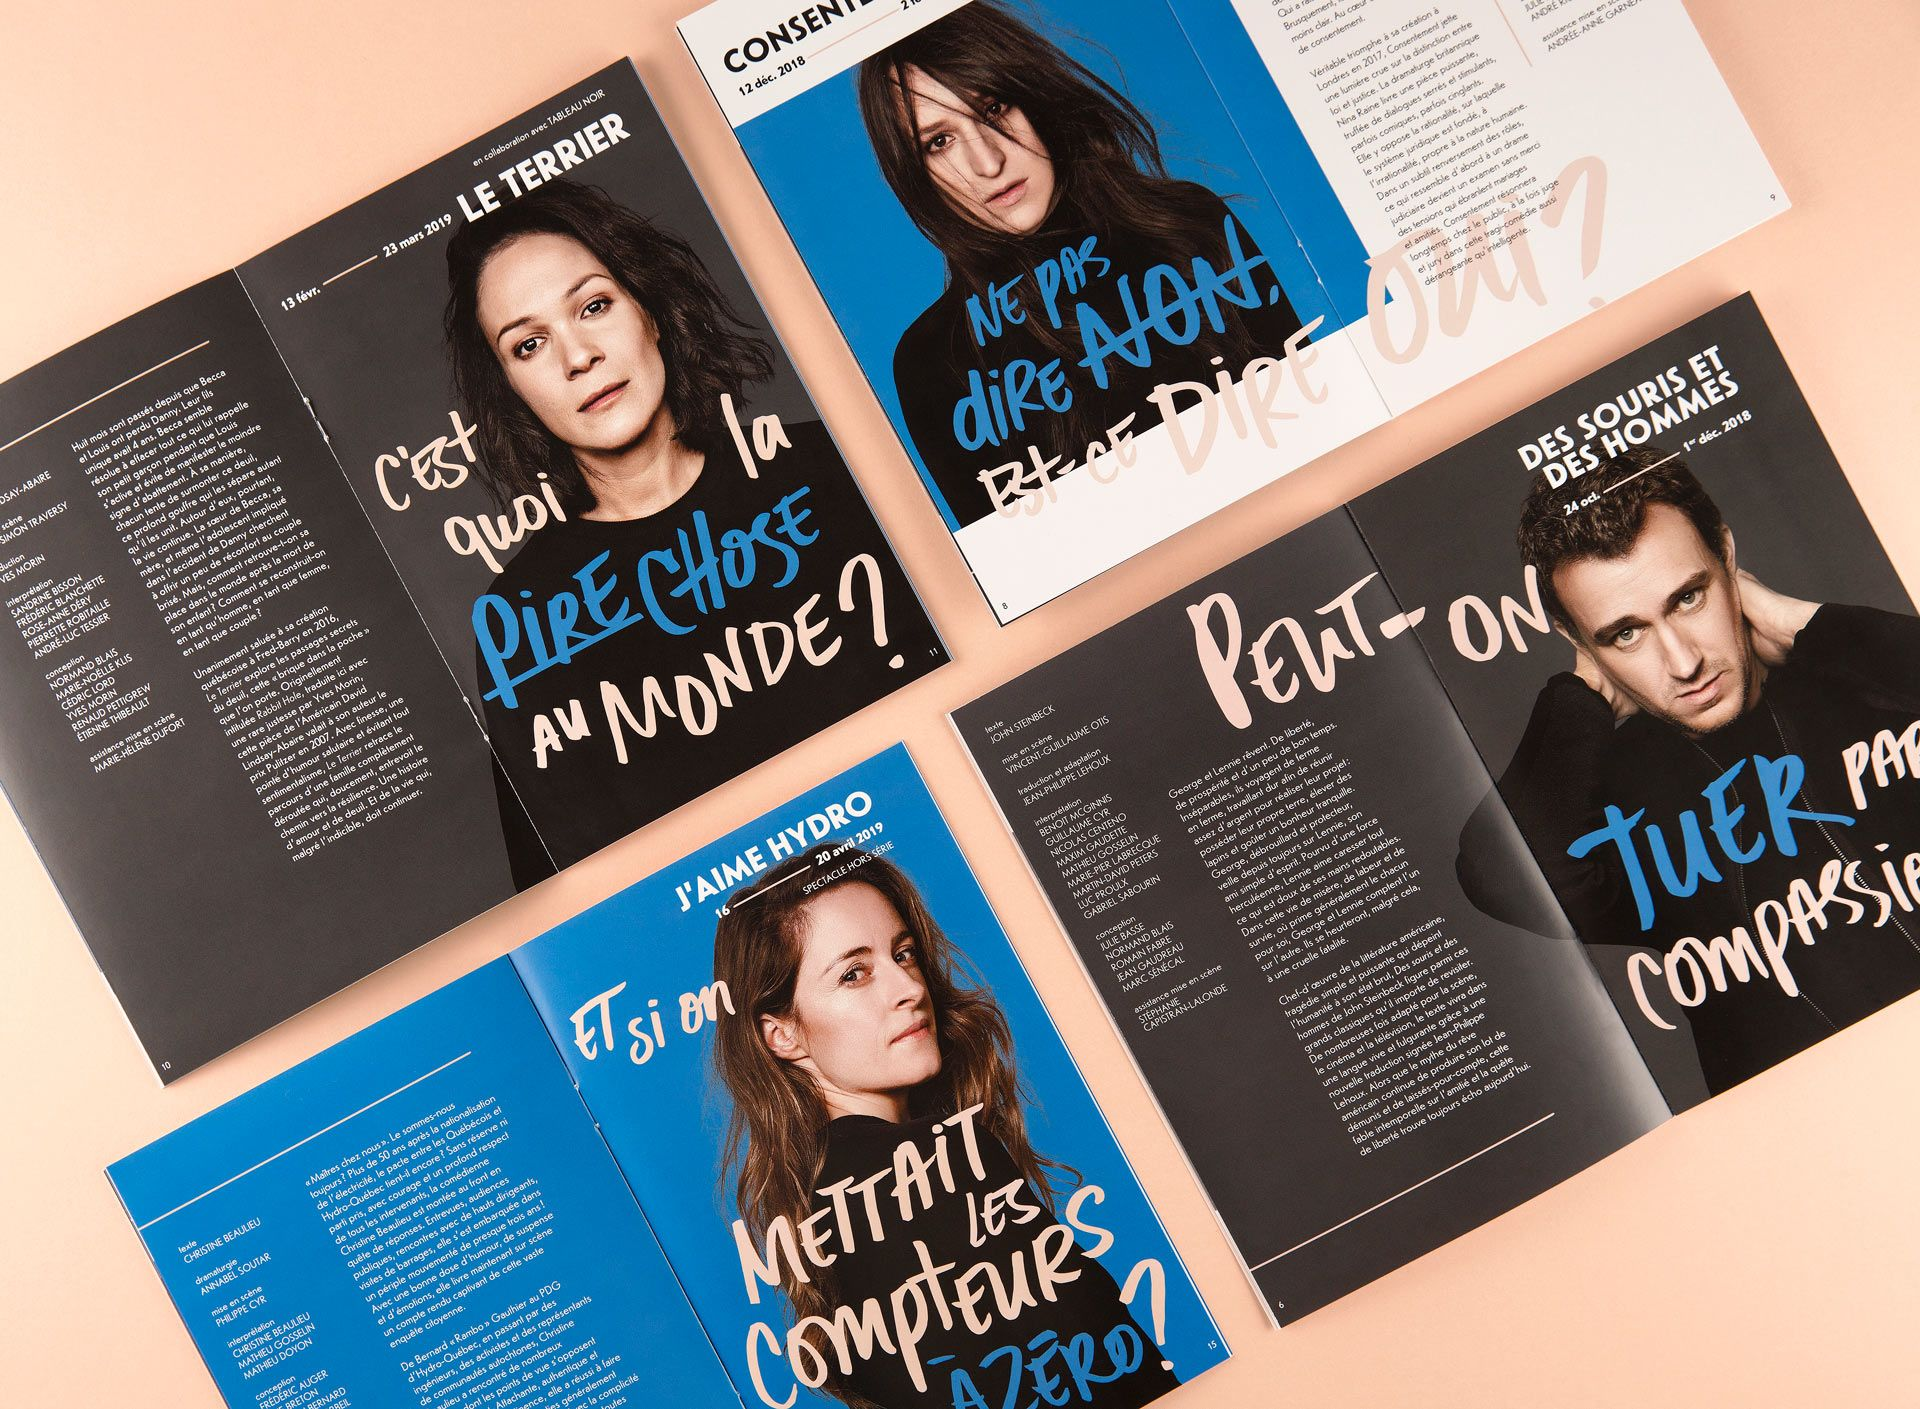 mockup of Duceppe Theatre posters in magazine photographs by Maxyme G DElisle